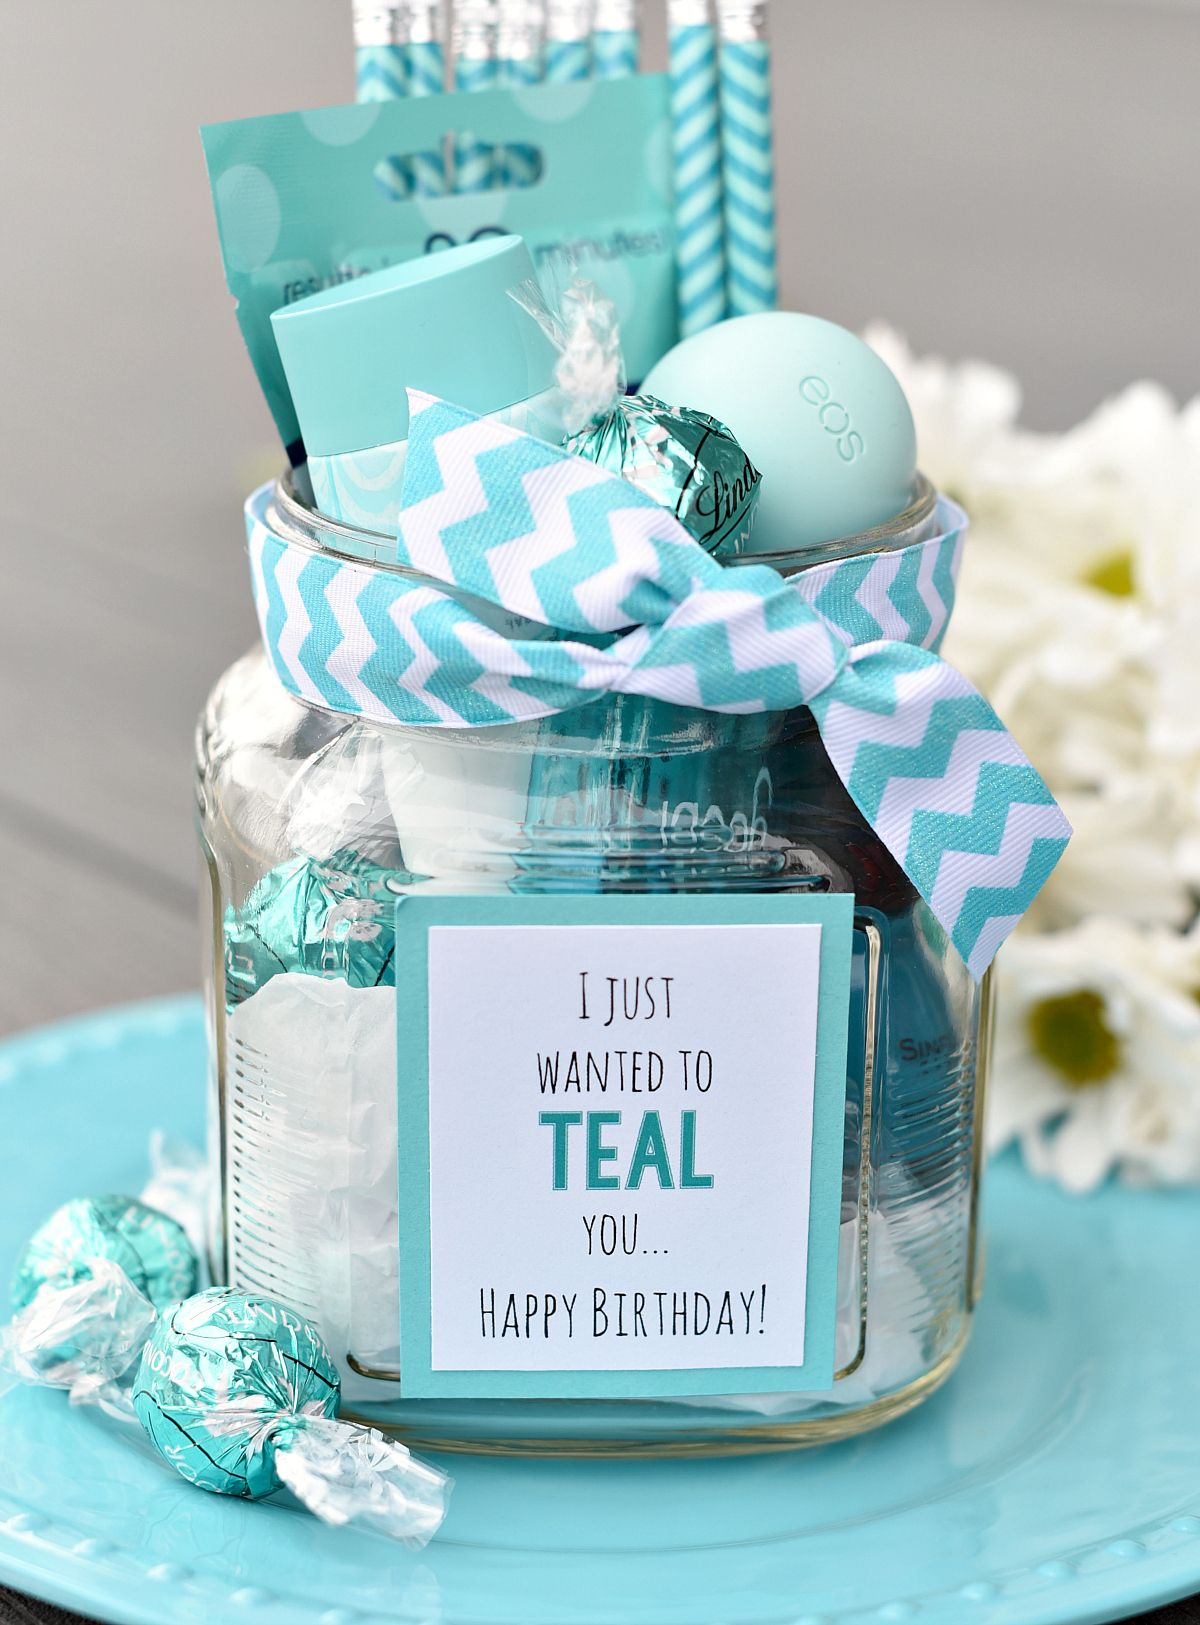 Teal Birthday Gift Idea For Friends Cheer Up Gifts